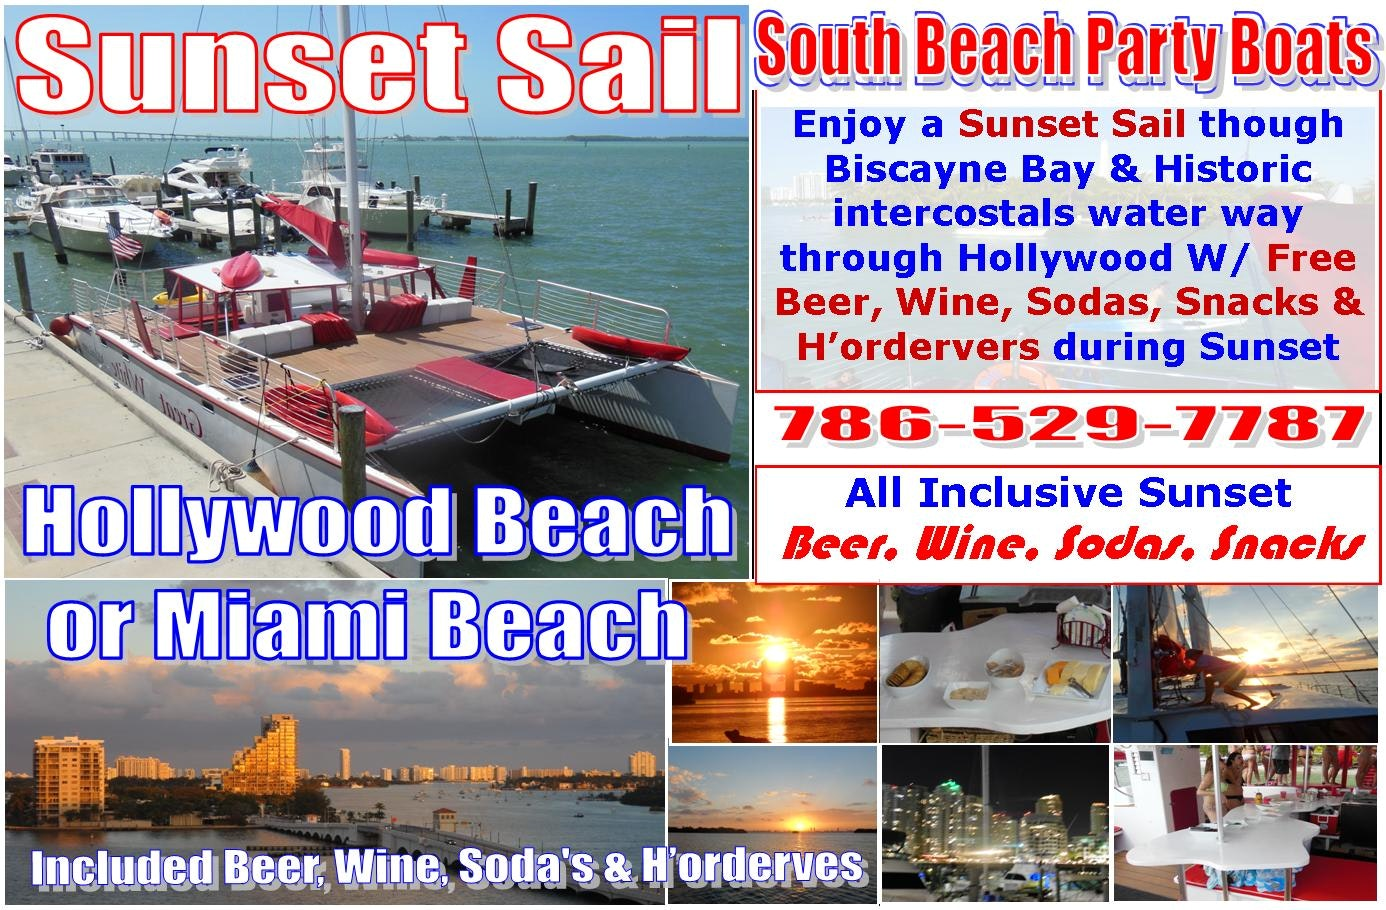 South Beach Party Boats Flyer